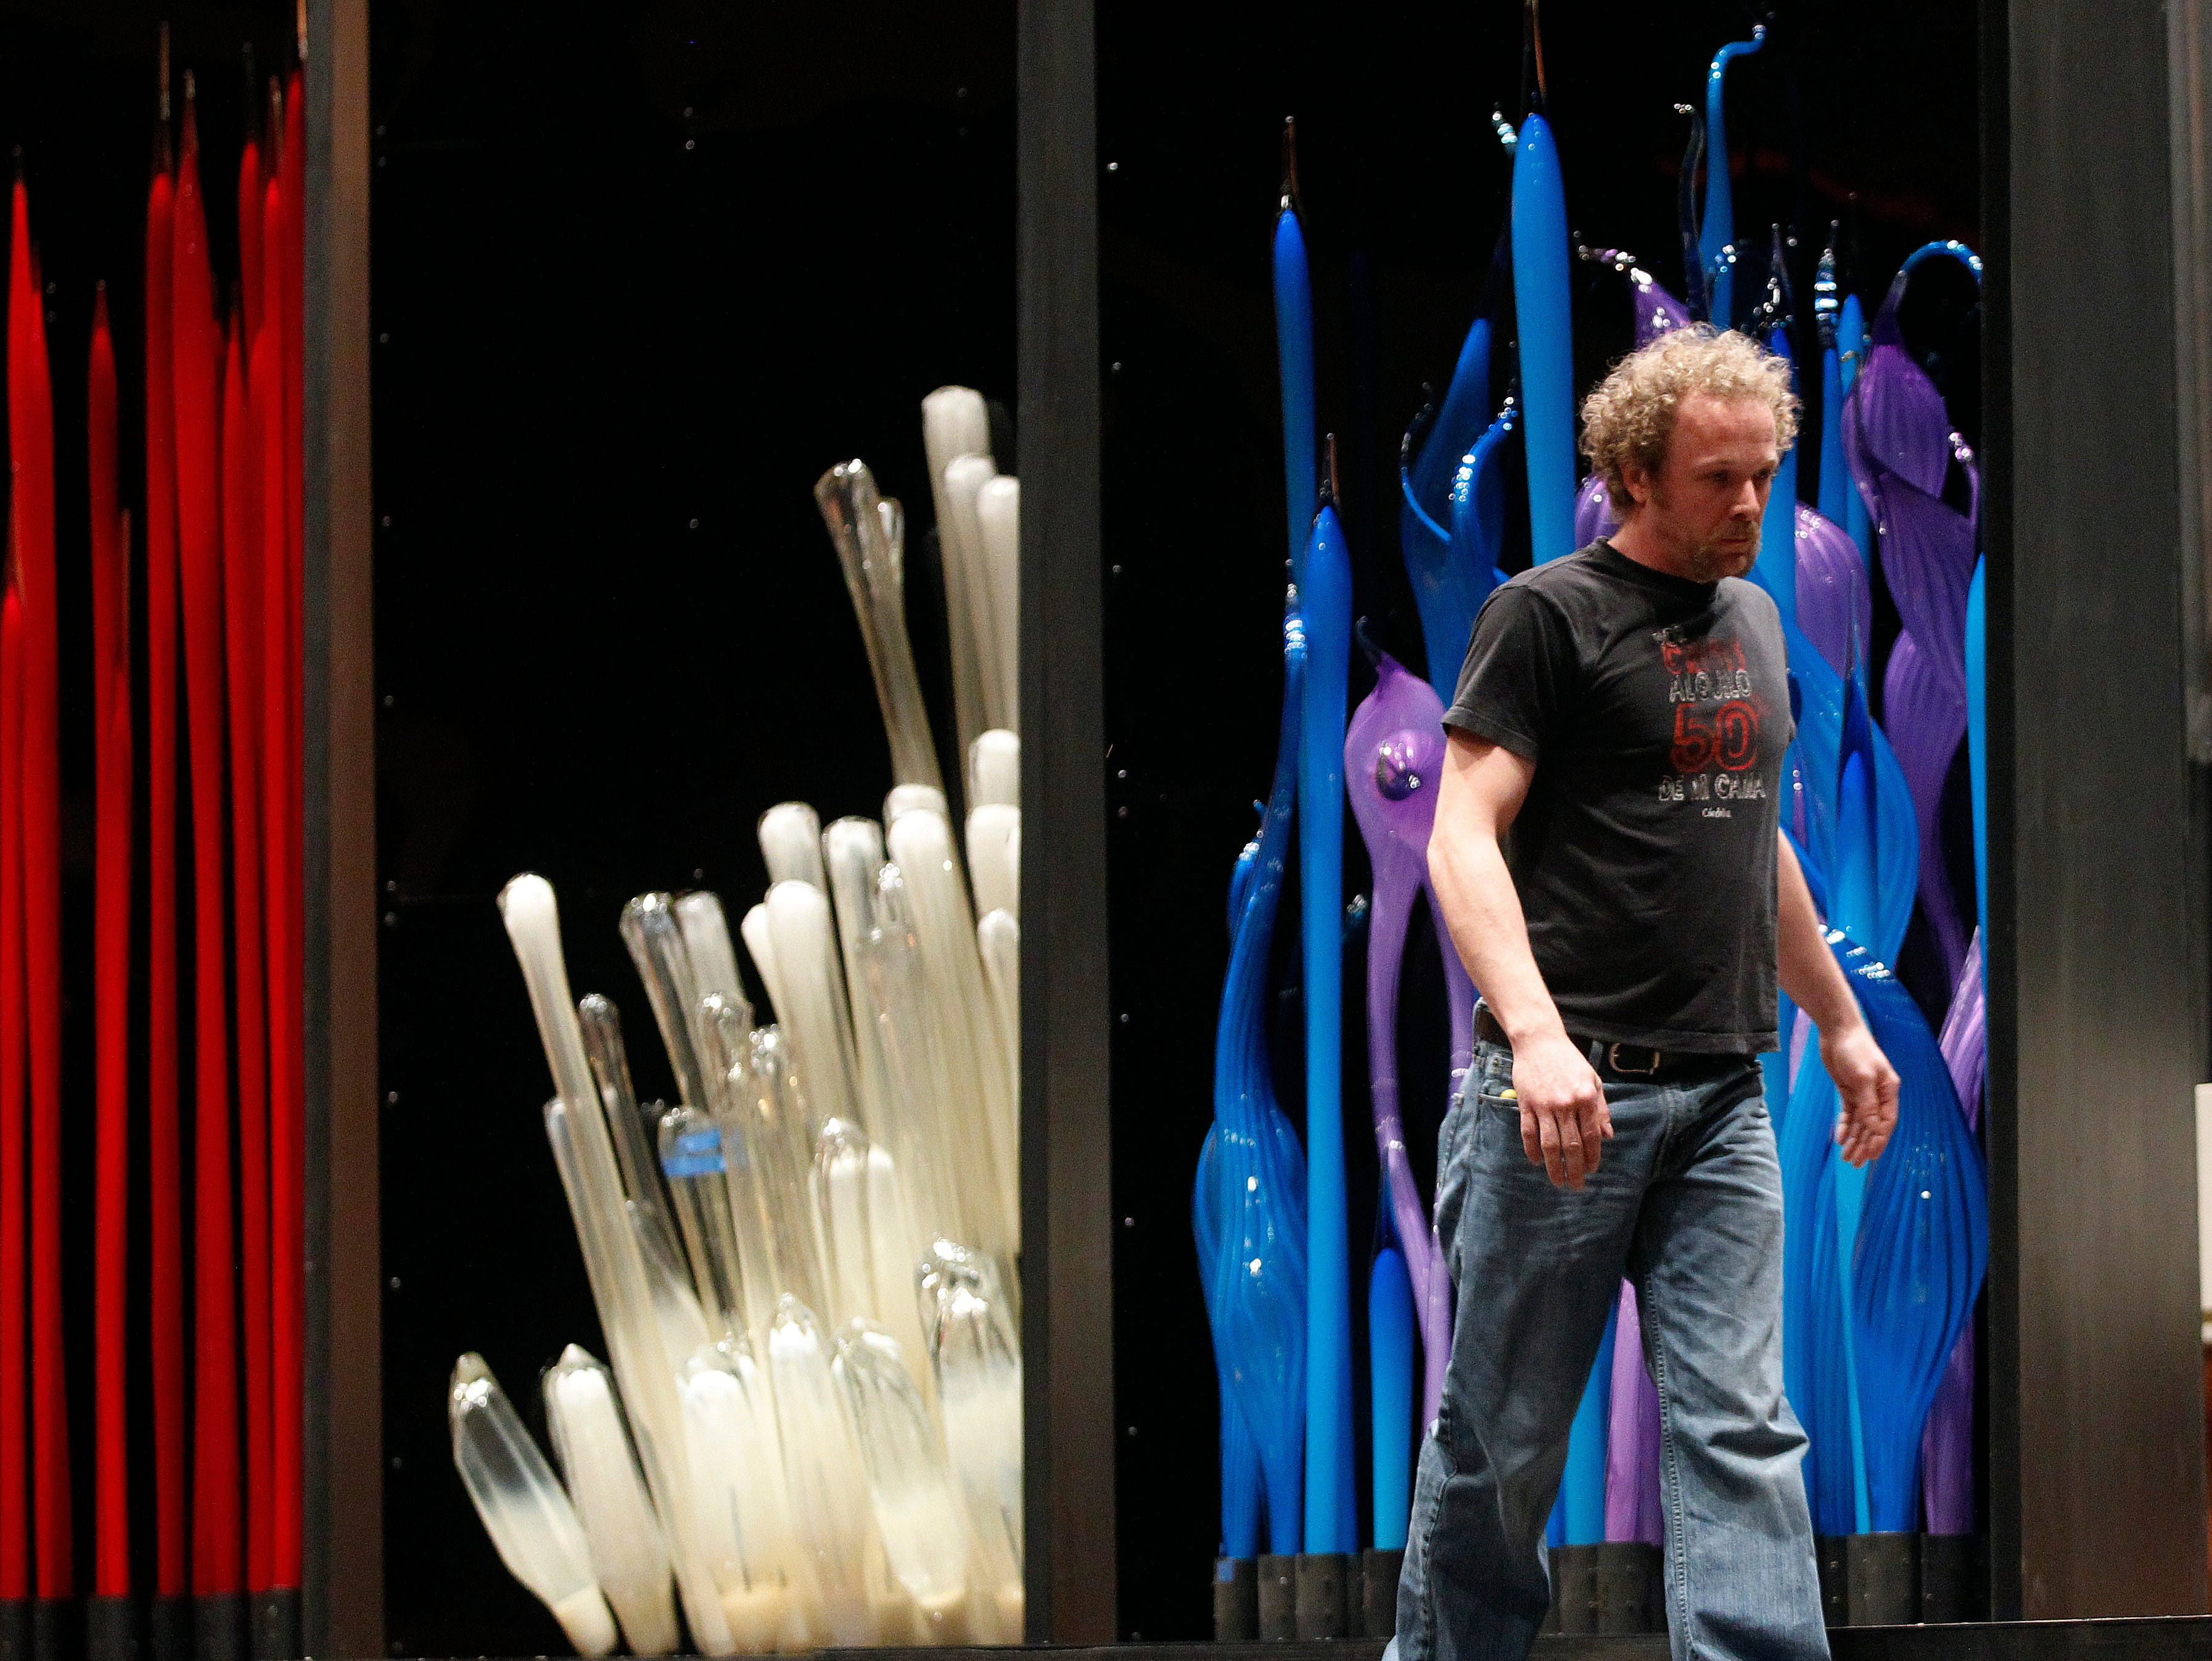 """Dustin Ashlock walks past three complete displays while setting up seven large Dale Chihuly glass sculptures Tuesday, March 12, 2013 at the Marcus Center for the Performing Arts in Milwaukee, Wis.  Ashlock works for Dale Chihuly. The sculptures will be incorporated in to the Milwaukee Symphony Orchestra's  weekend performances of  Bartok's """"Bluebeard's Castle"""" and Mozart's Concerto No. 2 in E-flat major for Horn and Orchestra. The sculptures, which Chihuly said consist of 176 pieces of glass, some up to 15 feet long, was be shipped from Washington state and accompanied by a setup crew. Weighing in at about 9,000 pounds, the sets have been seen in performances in Seattle, Nashville and Tel Aviv.  MARK HOFFMAN/MHOFFMAN@JOURNALSENTINEL.COM"""